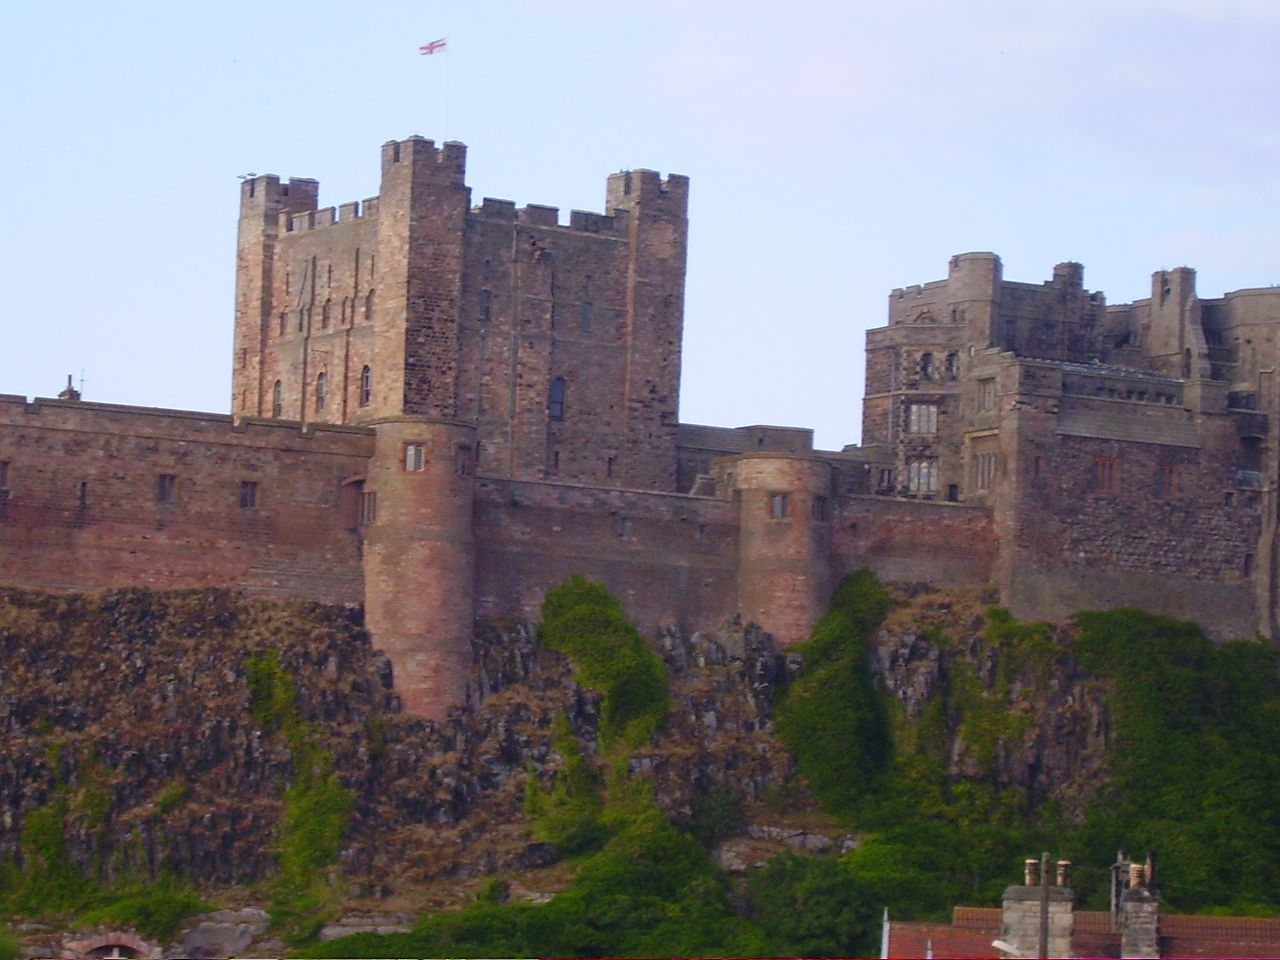 bamburgh castle - photo #35